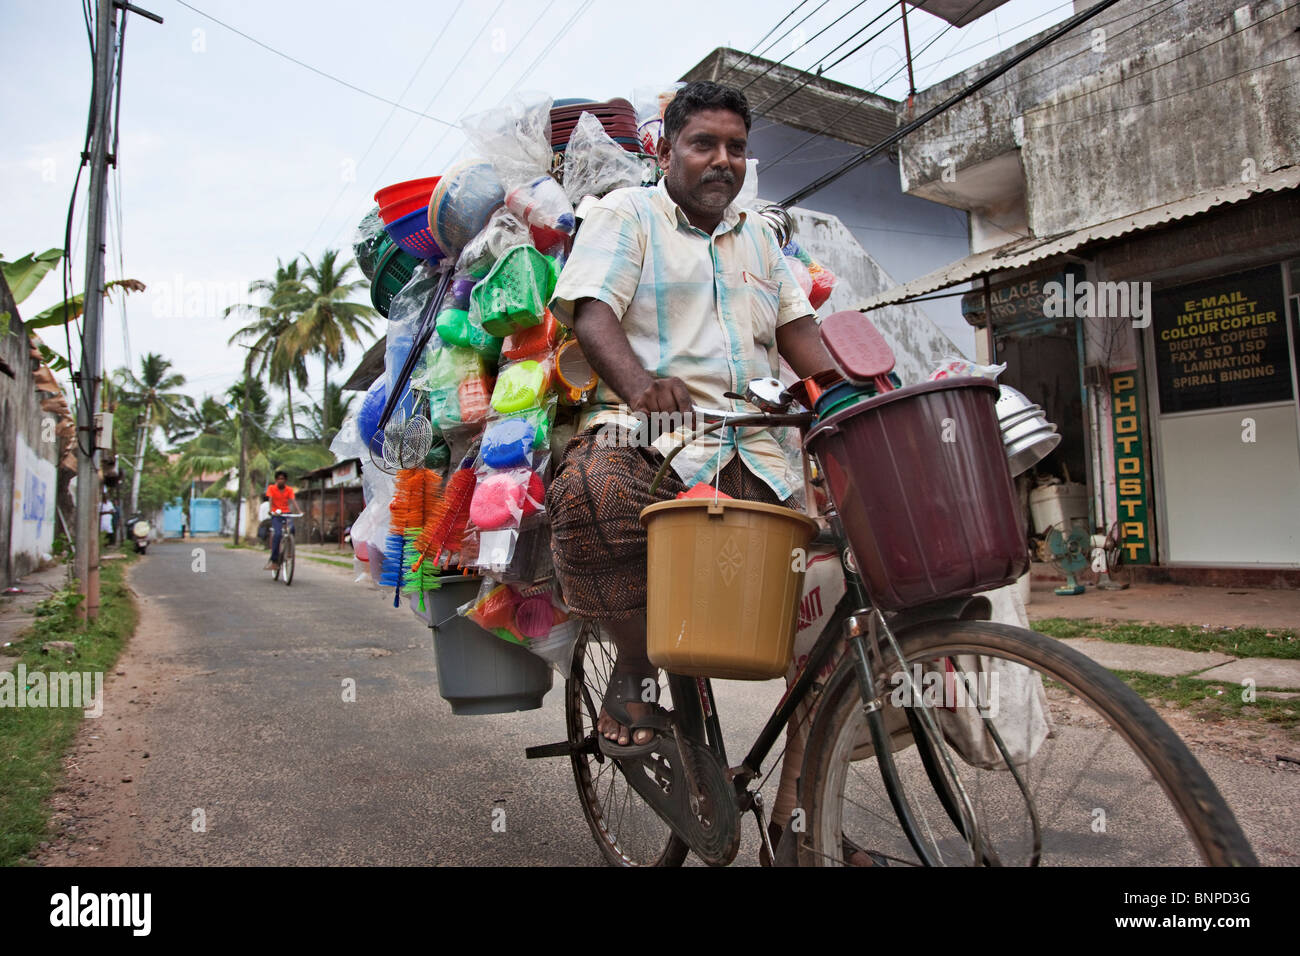 Middle aged Man on bicycle selling various types of plastic household items cycling down a rural city street - Stock Image